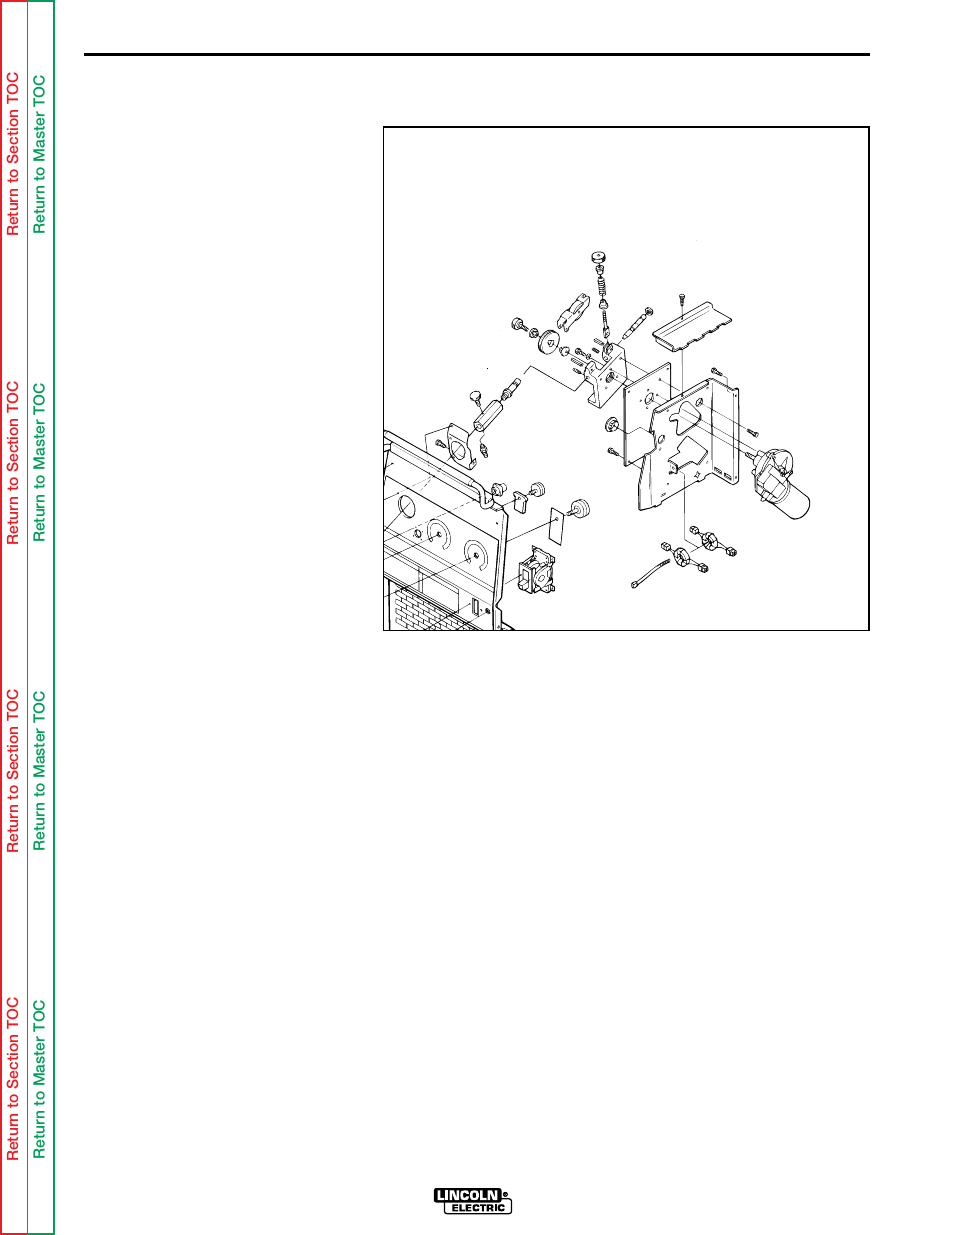 Troubleshooting Repair Procedure Lincoln Electric Wire Matic 7 Motor Wiring Diagram 255 Svm 119 A Manuel Dutilisation Page 81 98